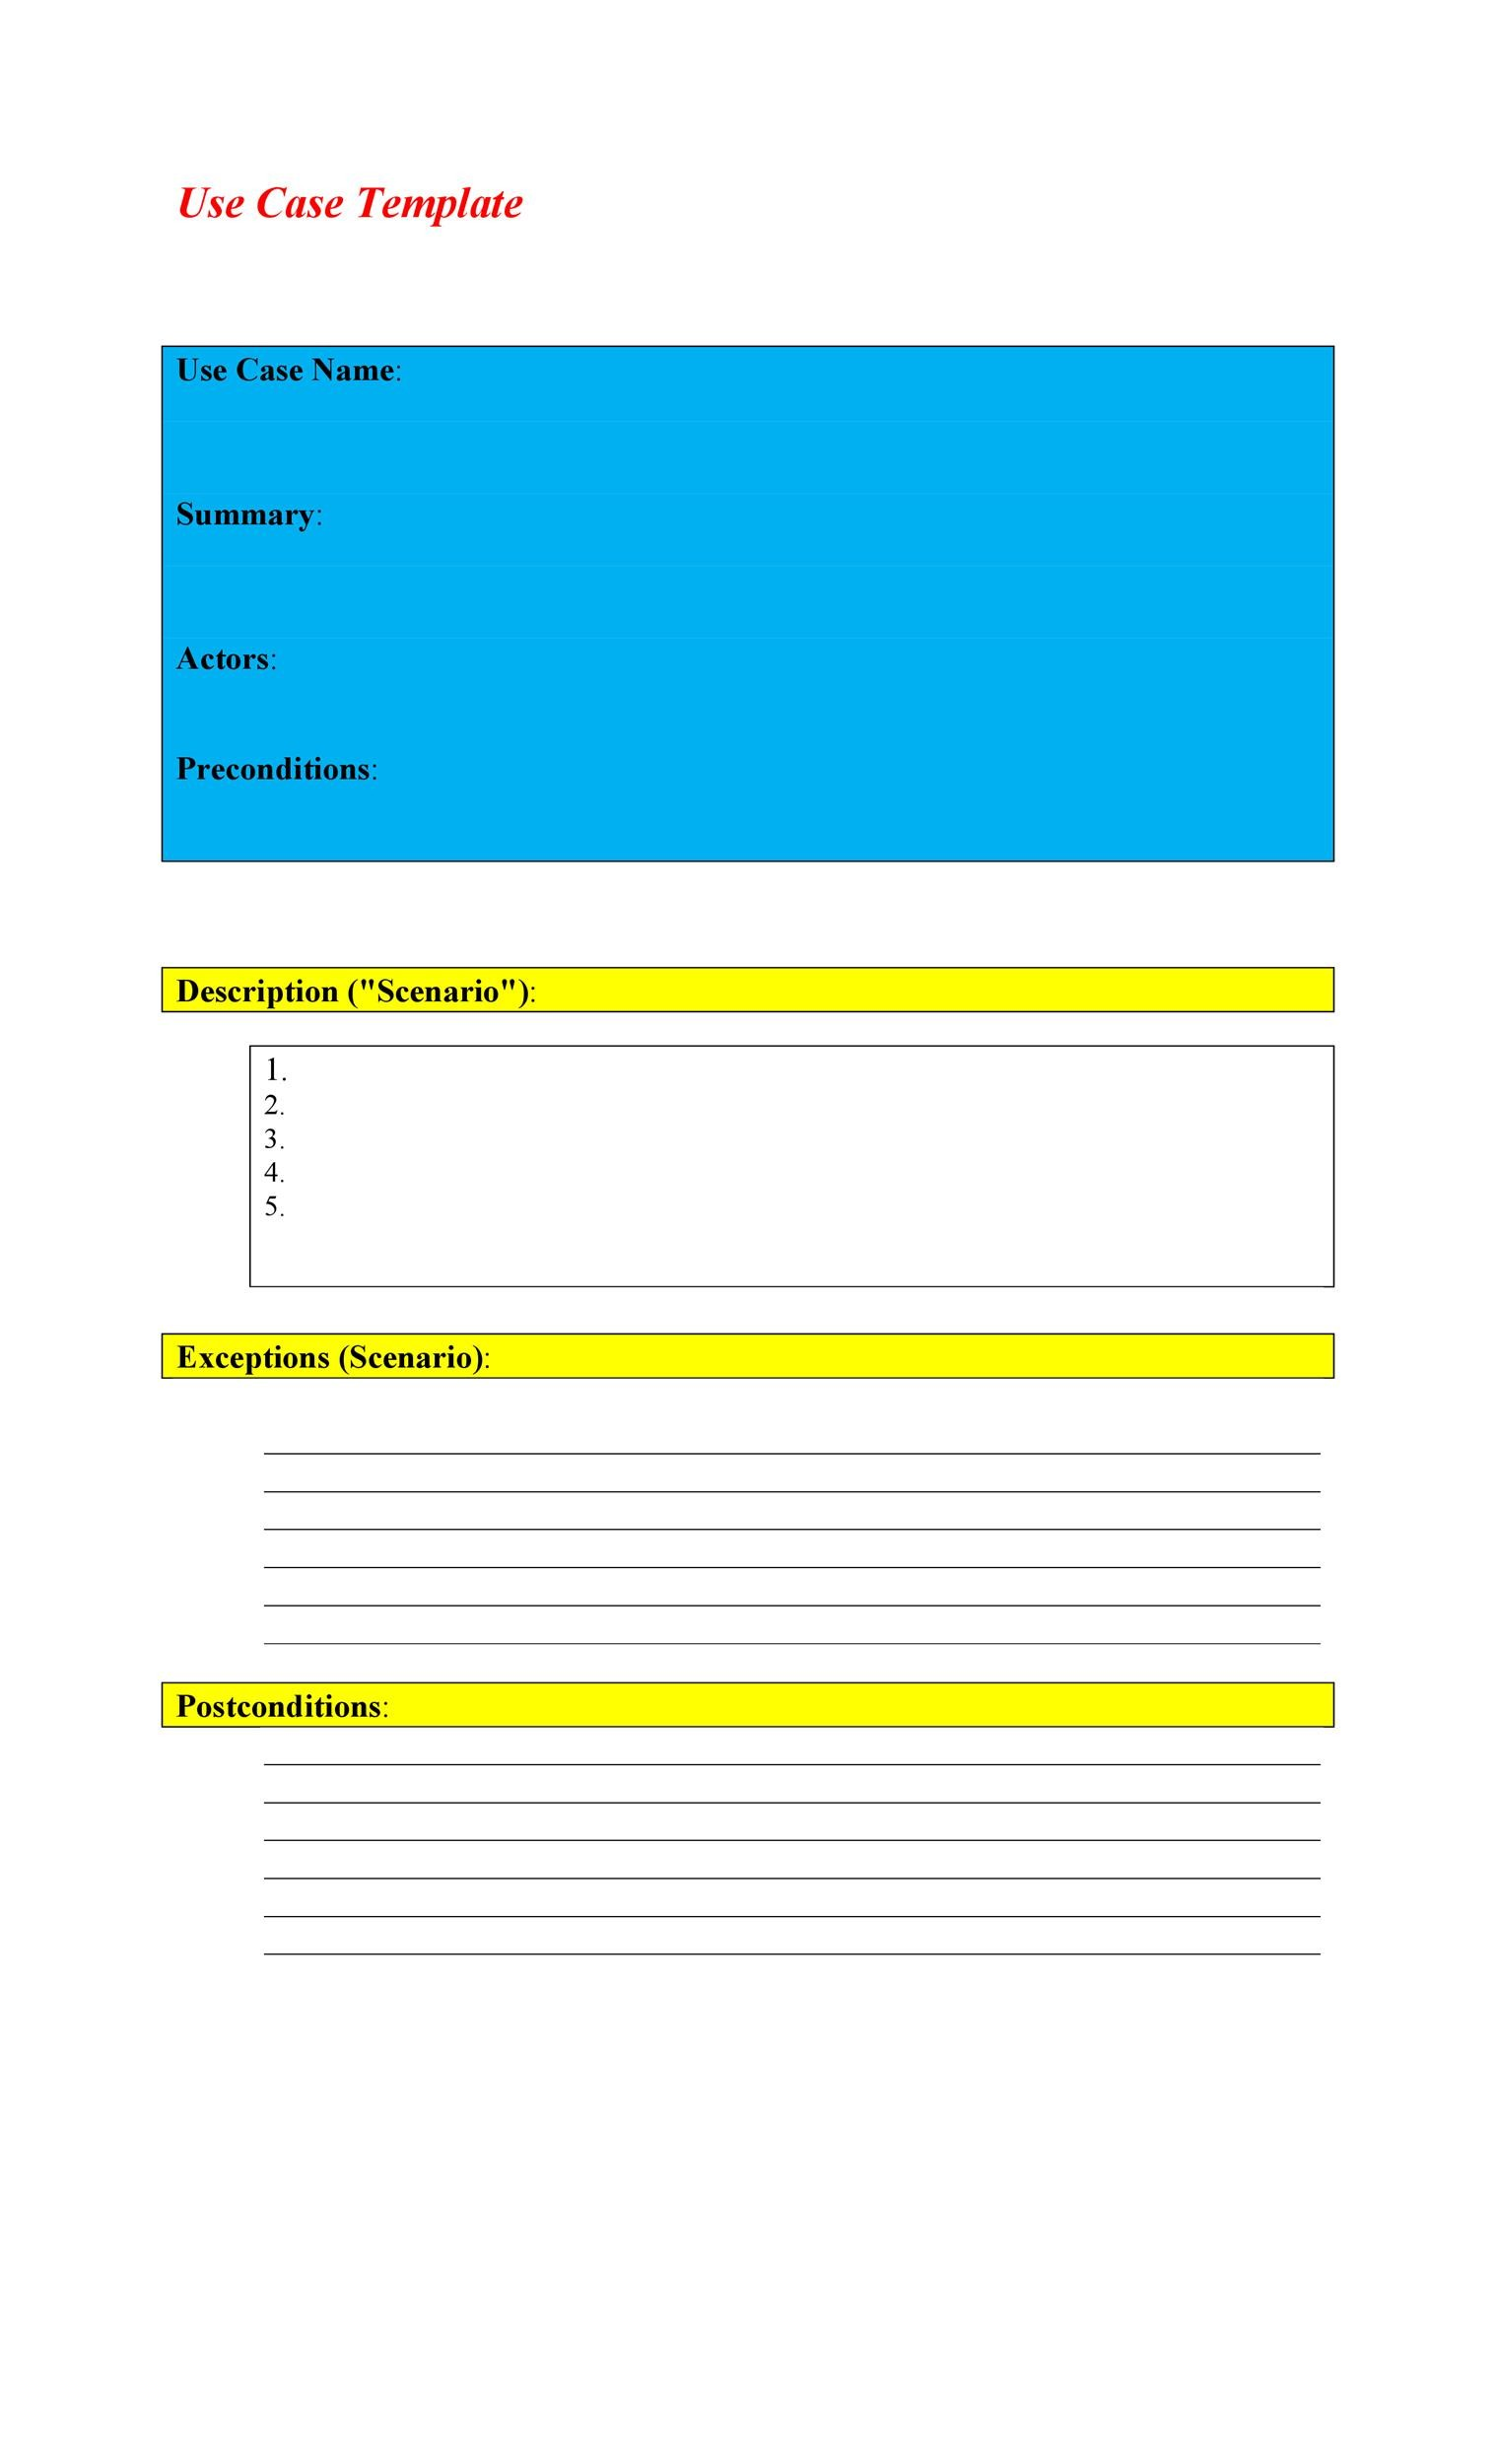 Free Use Case Template 14